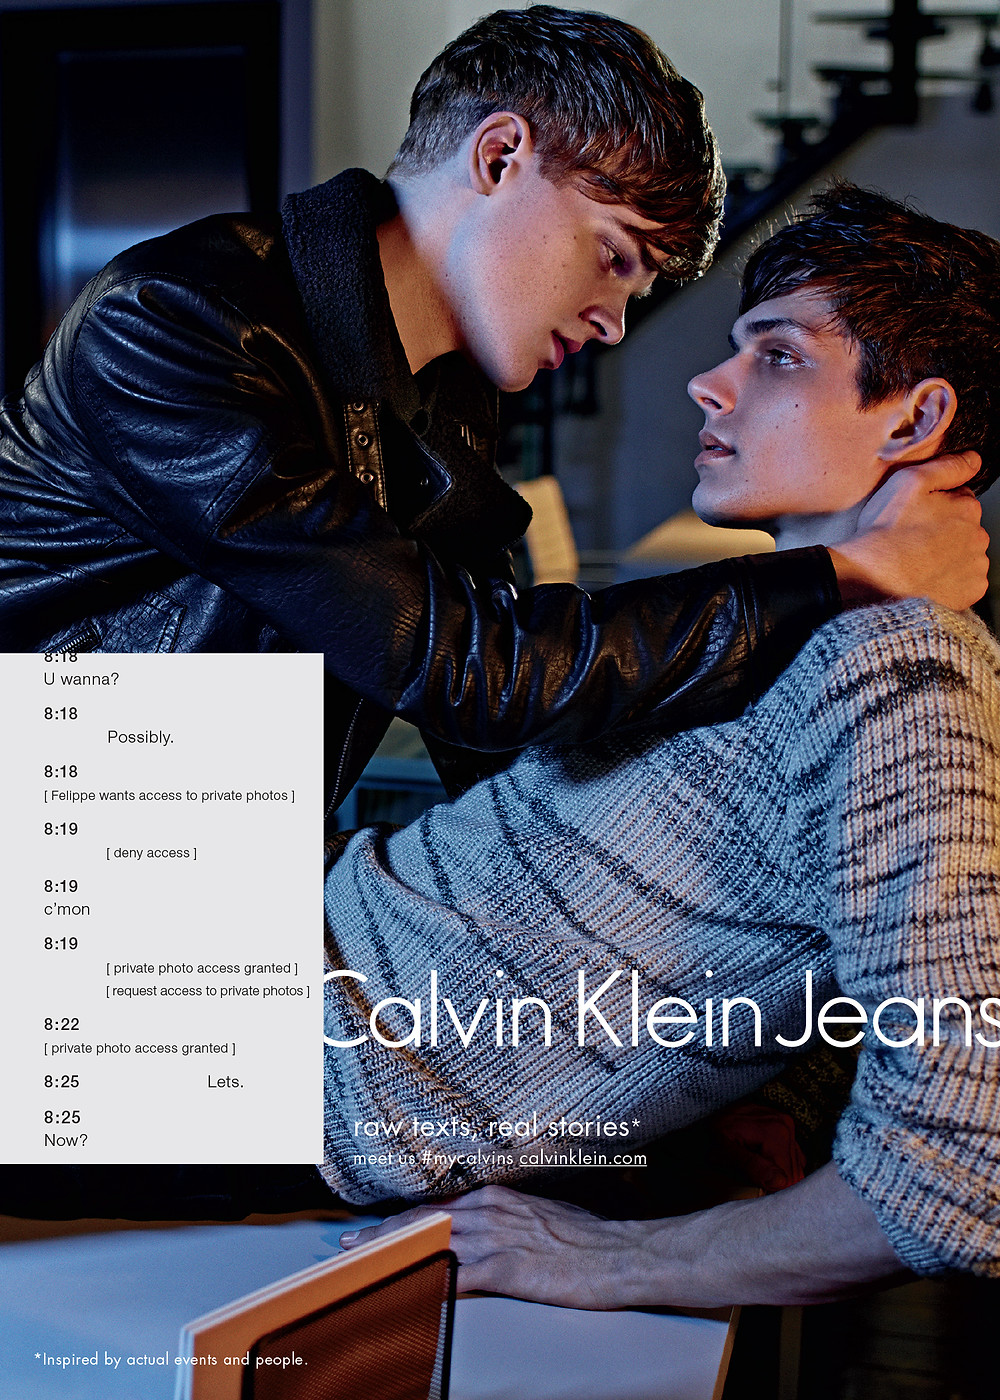 How daring brands use social media: sexting and Botticellian springs - Calvin Klein Jeans #mycalvins, advertising, campaign, marketing, viral, art. branding - Sound Identity blog